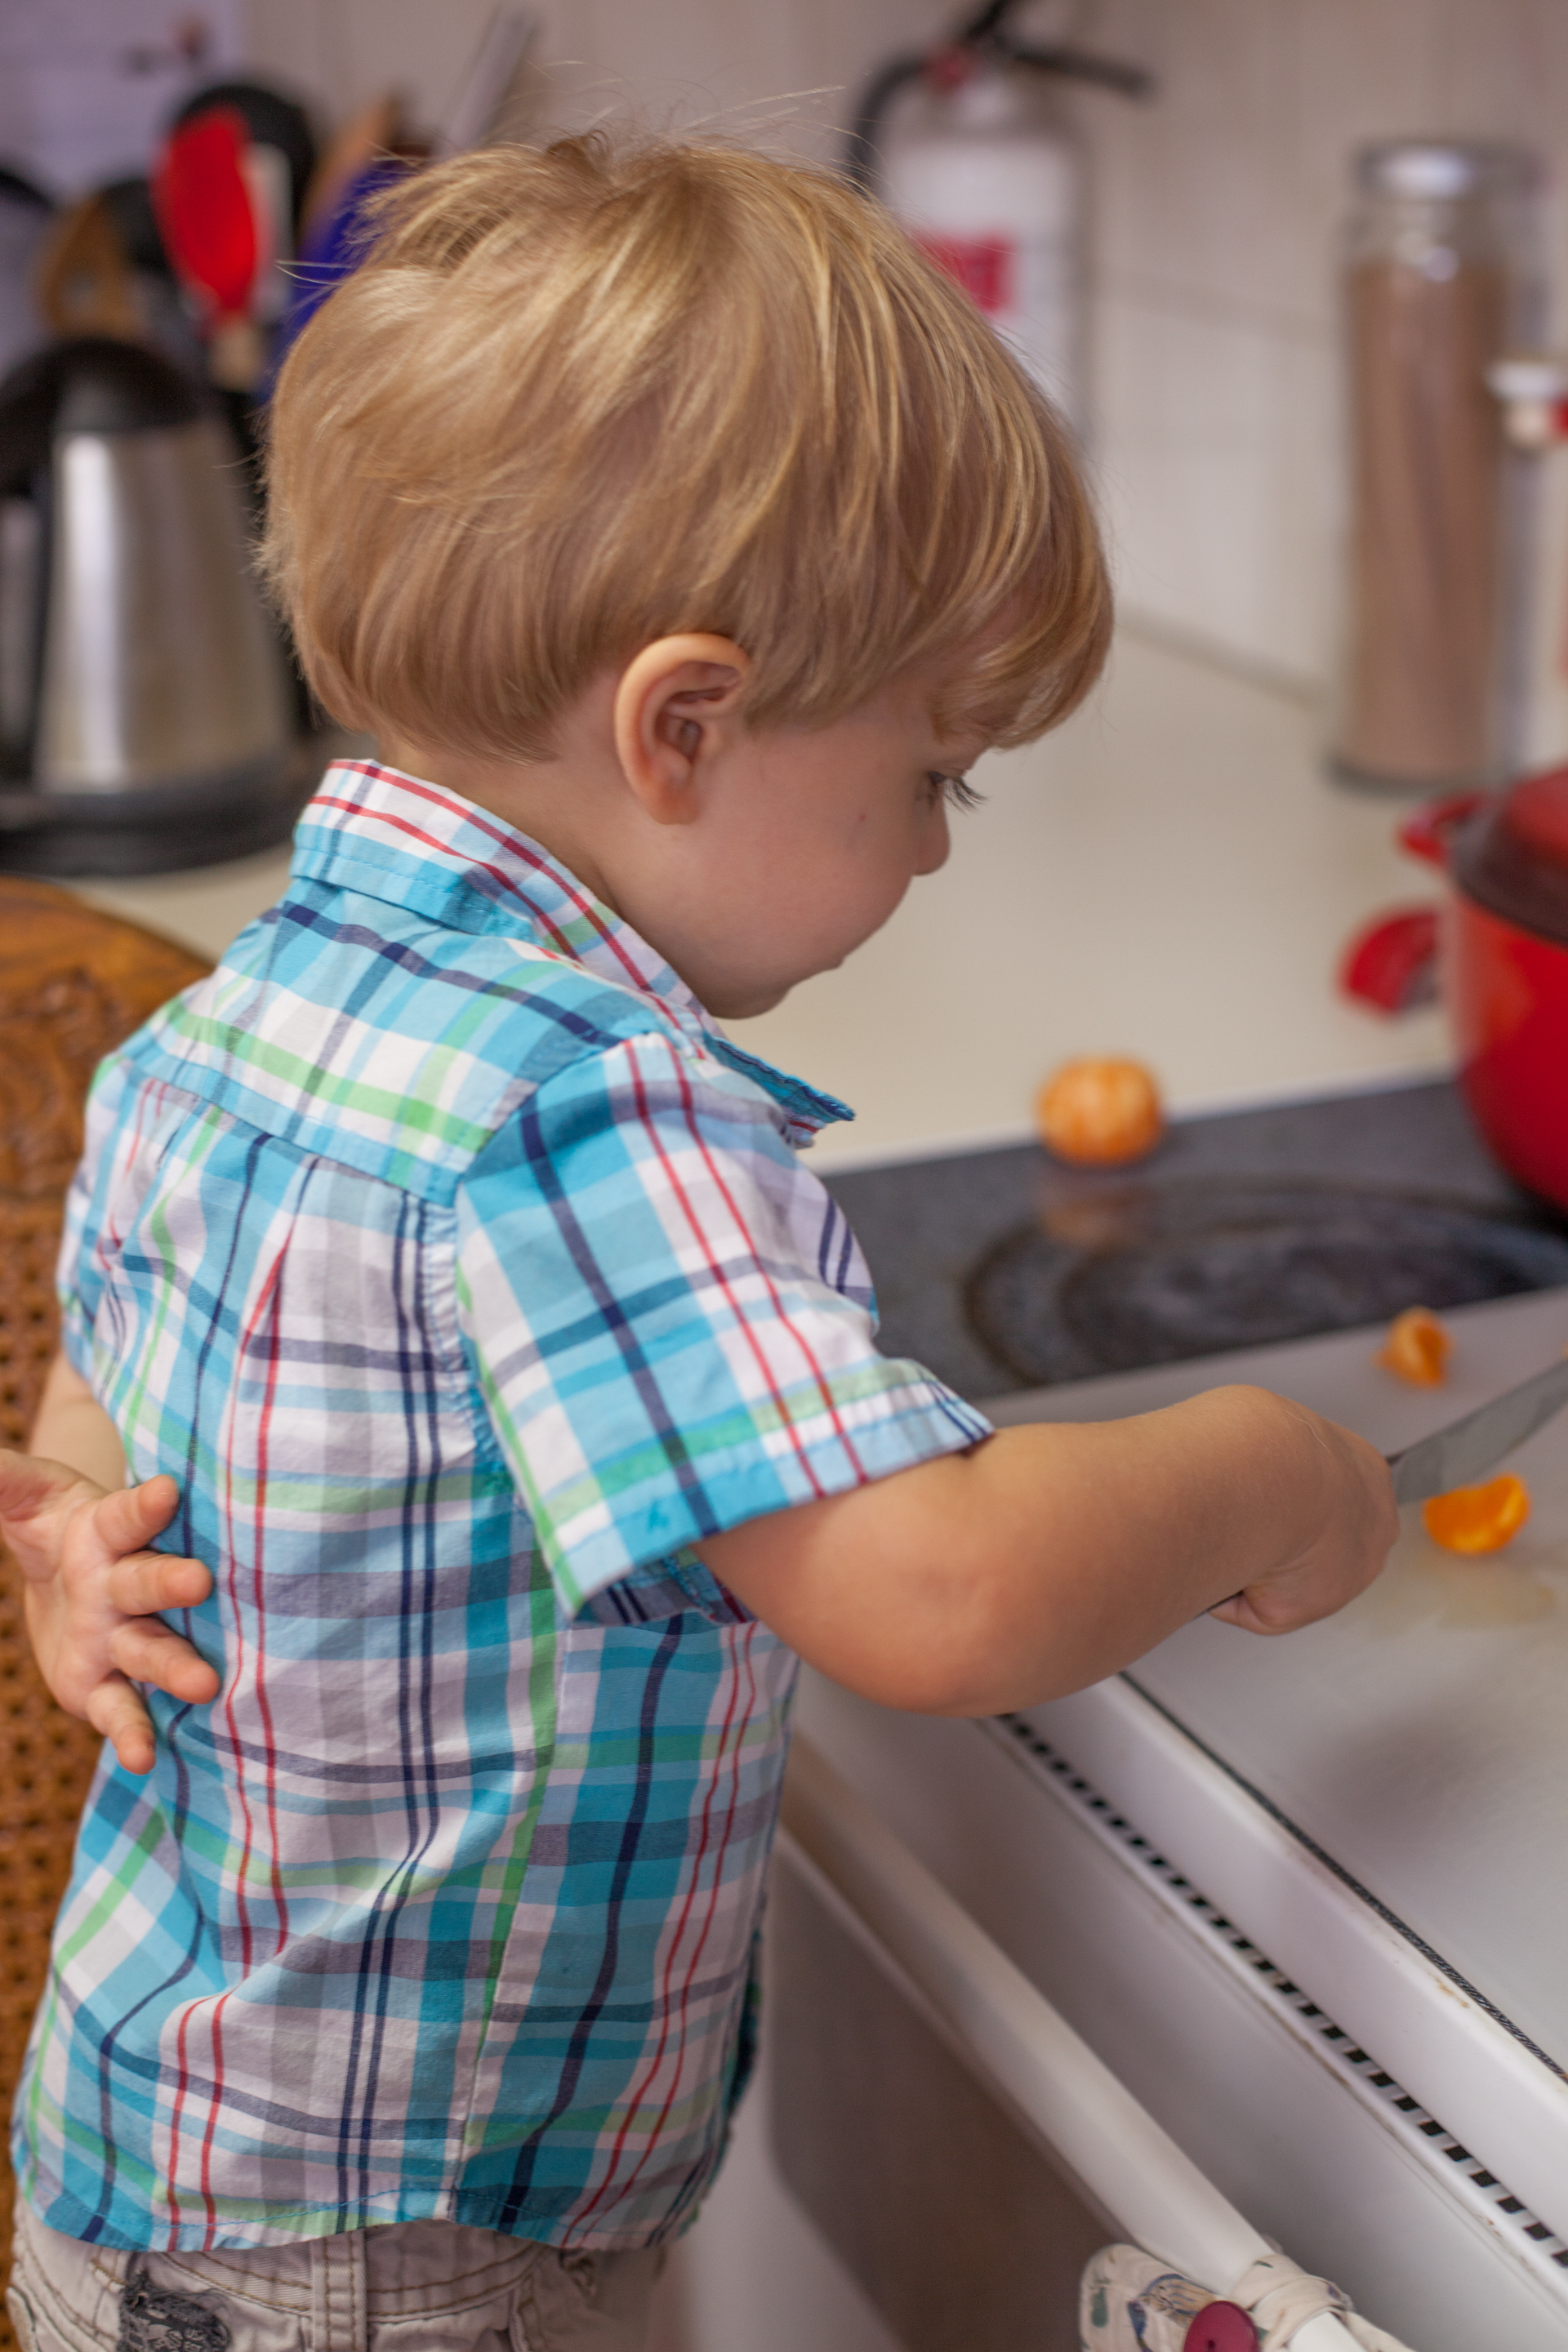 The Best Kids Kitchen Knife and Knife Safety For Kids